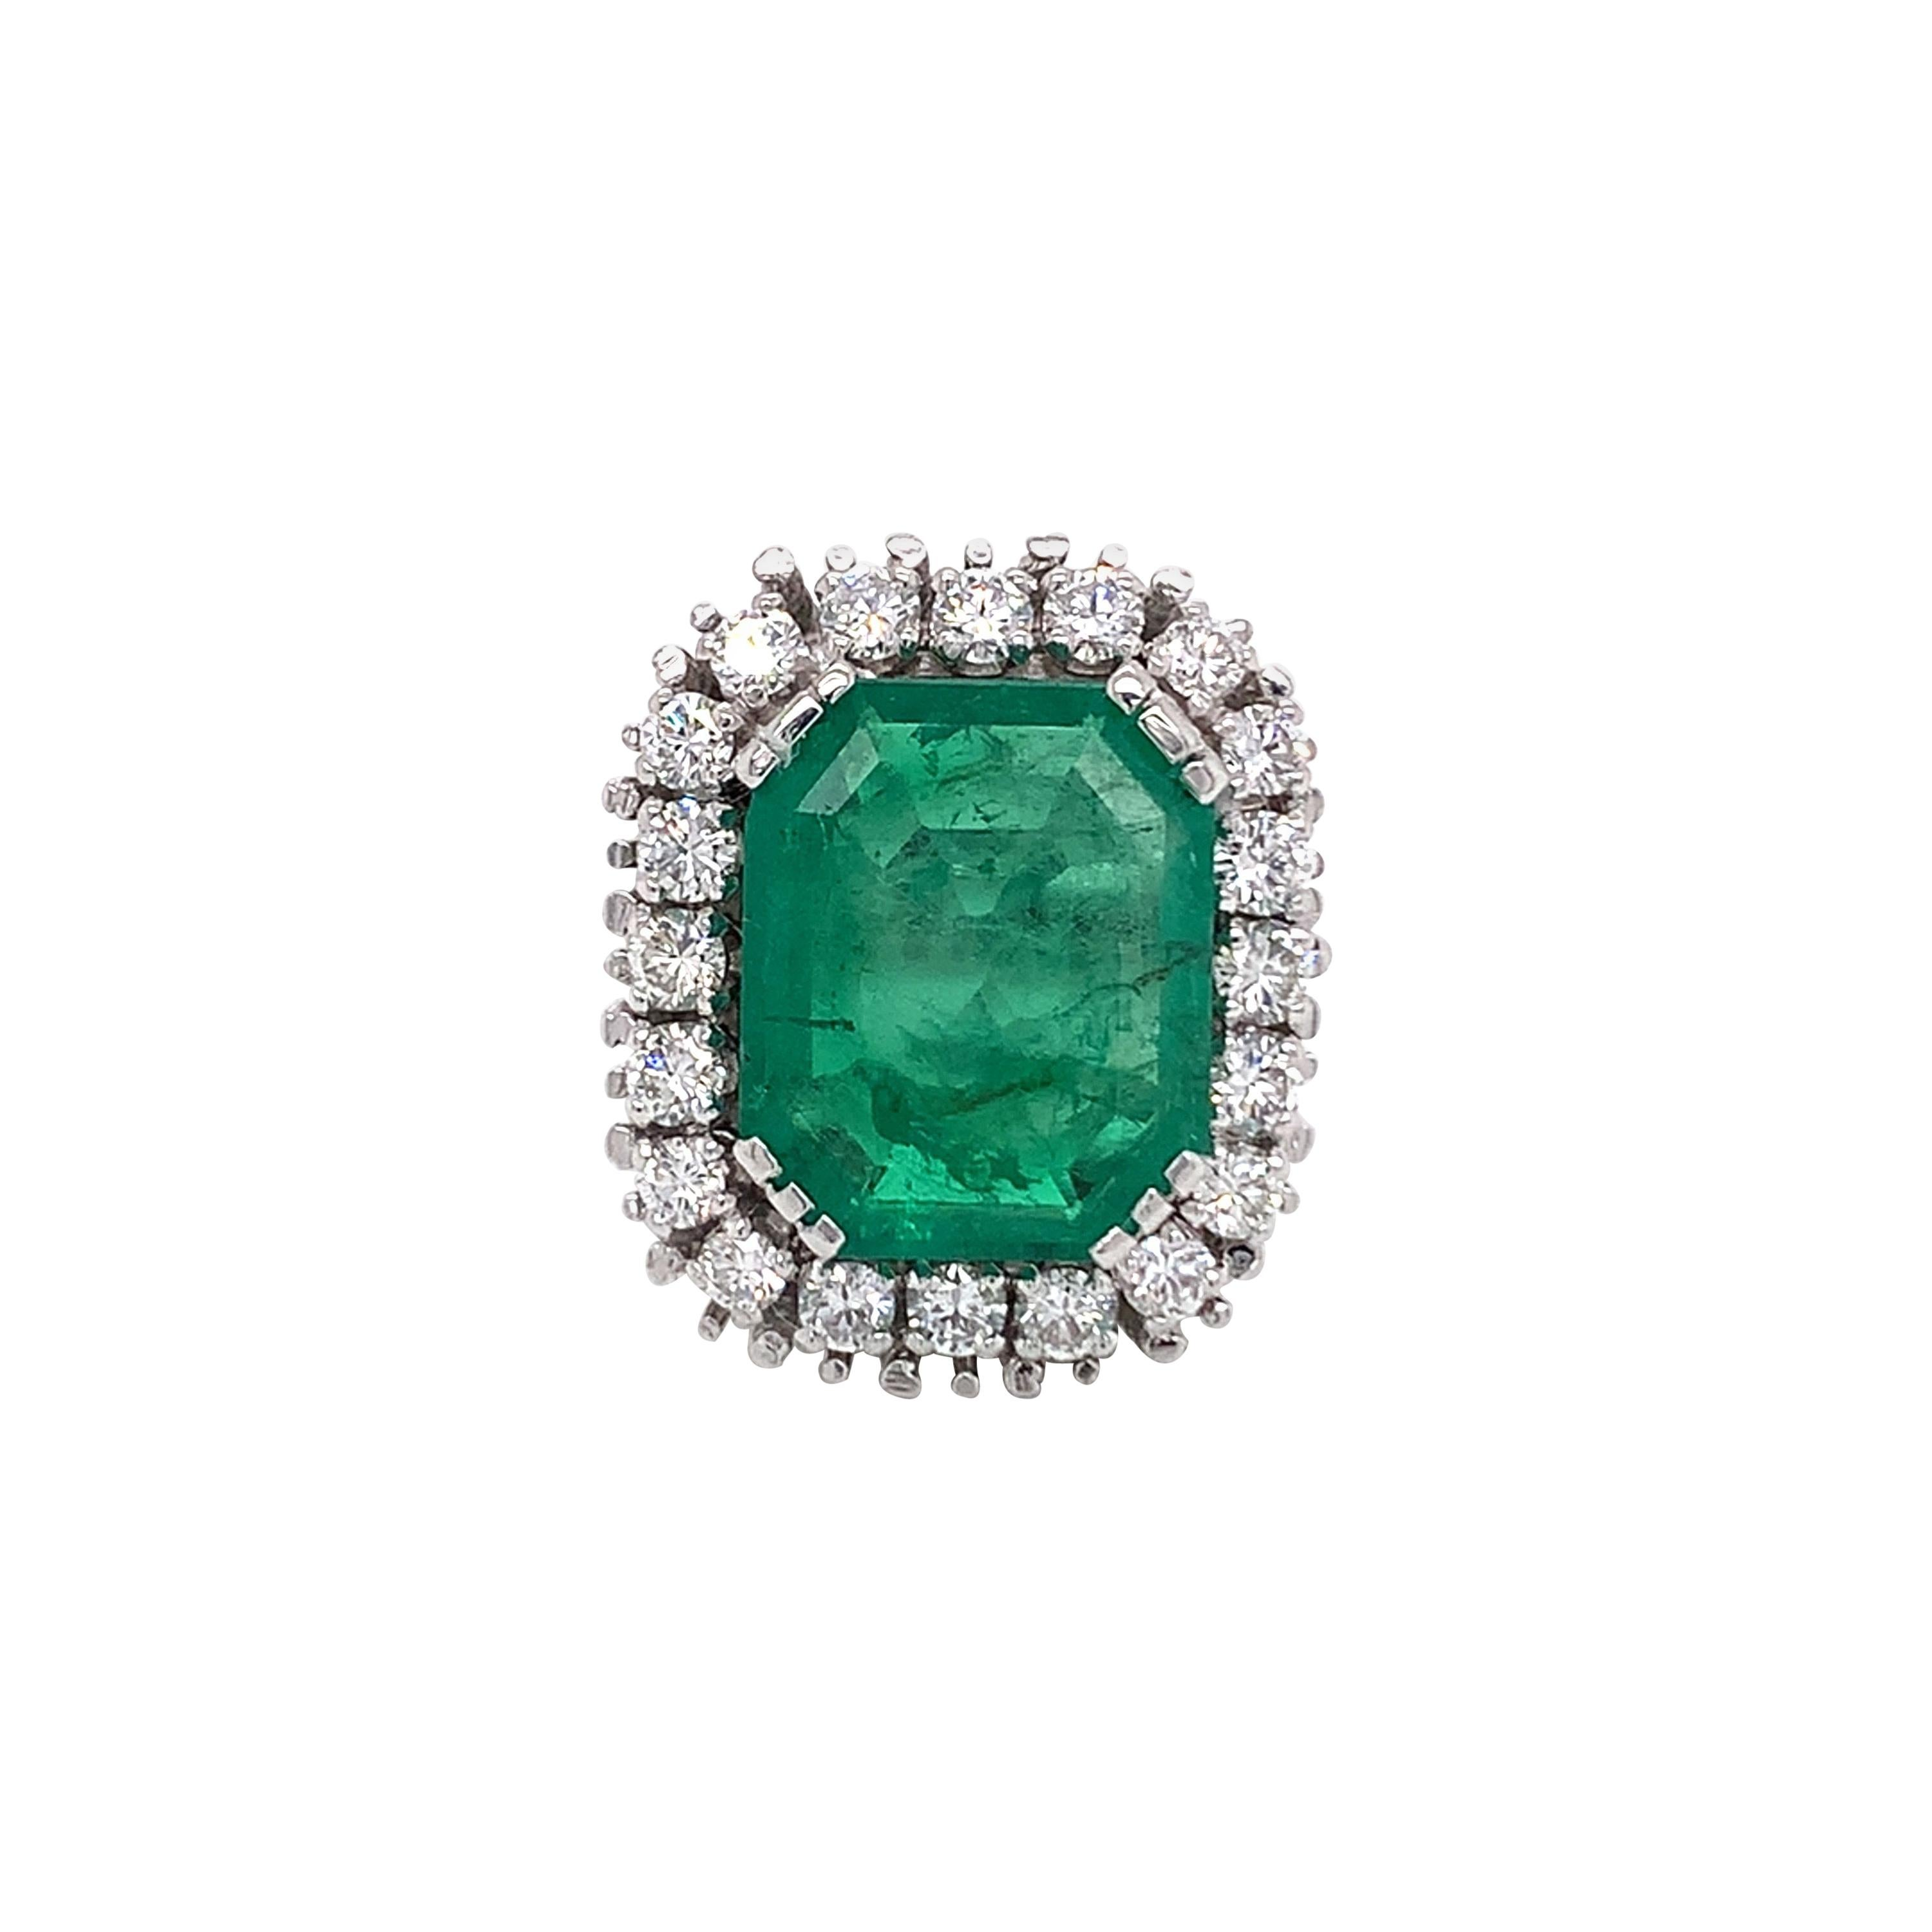 GIA Certified Antique Style Diamond & Emerald Cocktail Ring